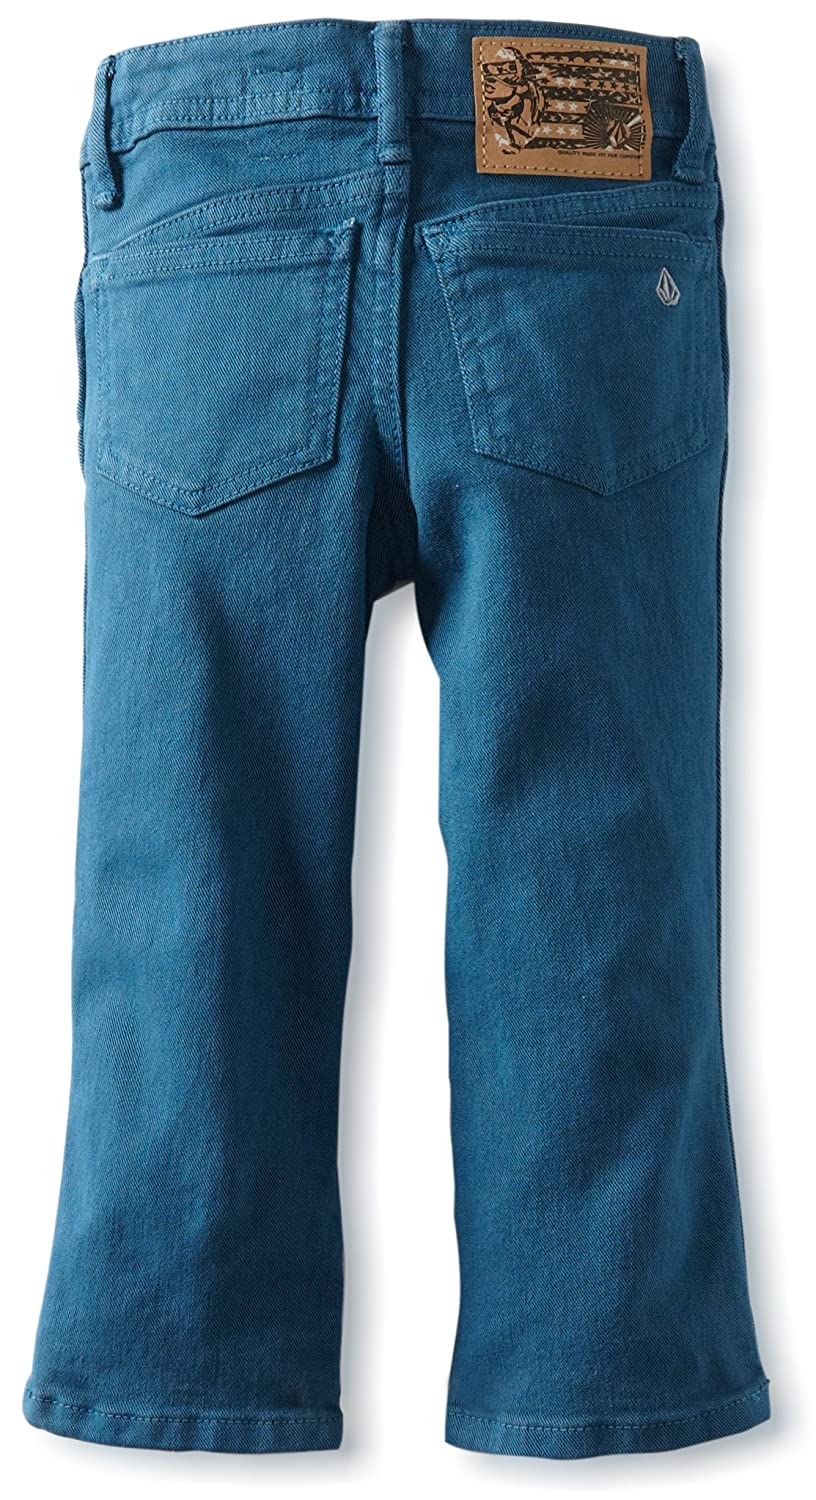 Volcom Little Boys 2x4 Jeans Little Youth Tidal Blue 6 Volcom Young Men/'s